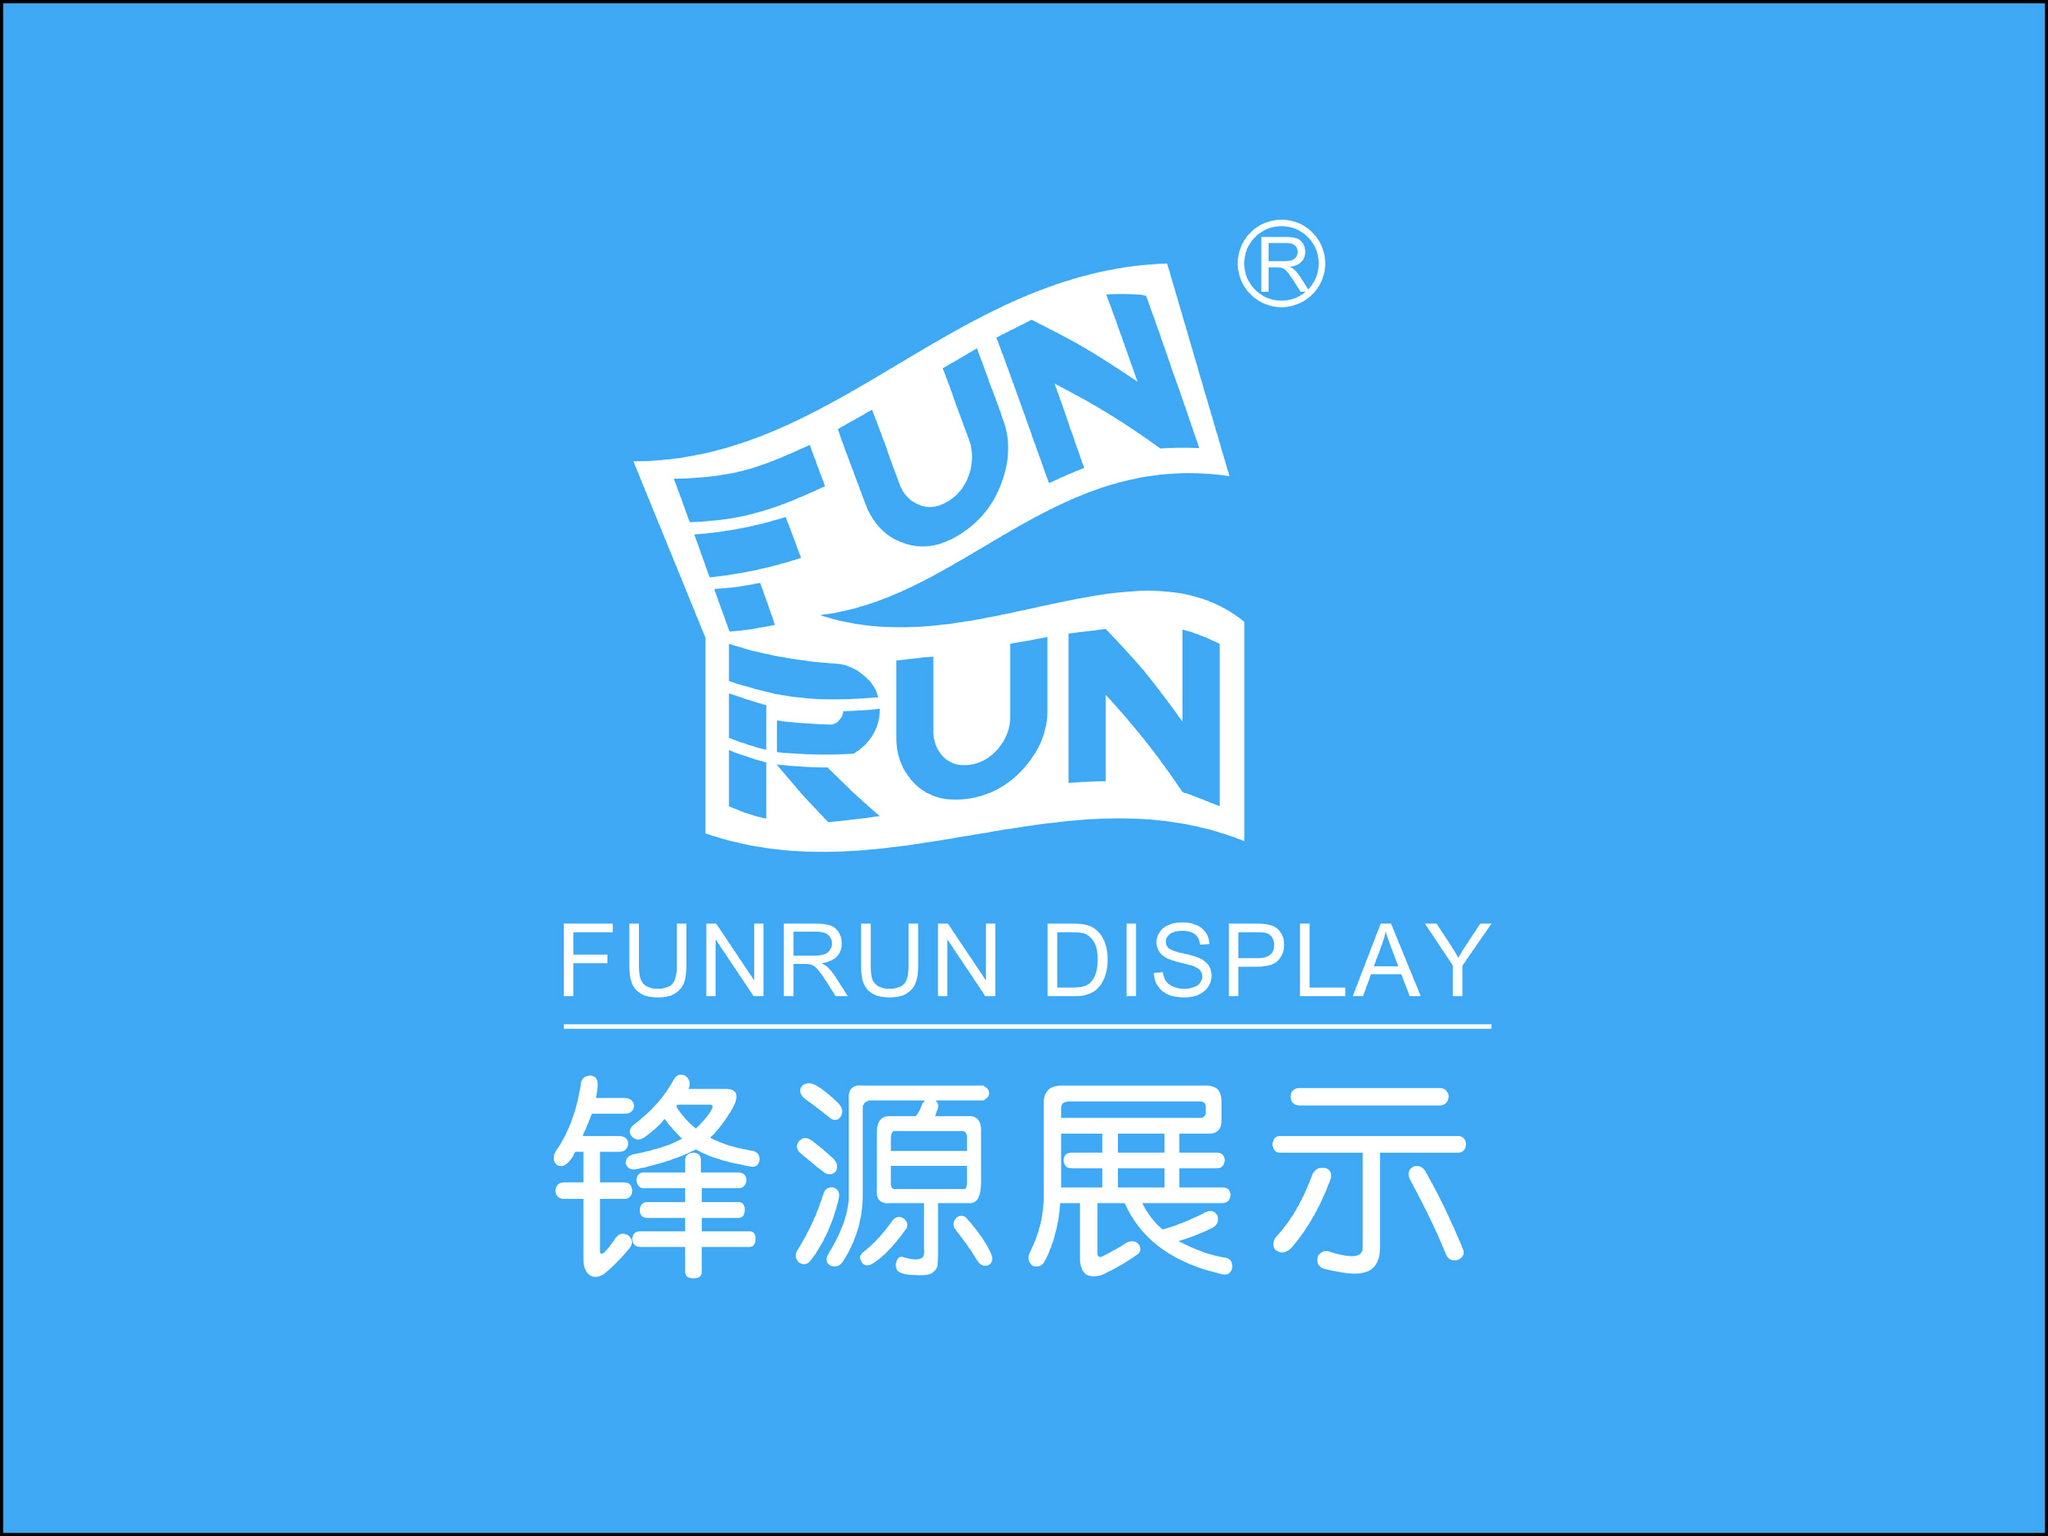 Suzhou Funrun Display Equipment Co., Ltd